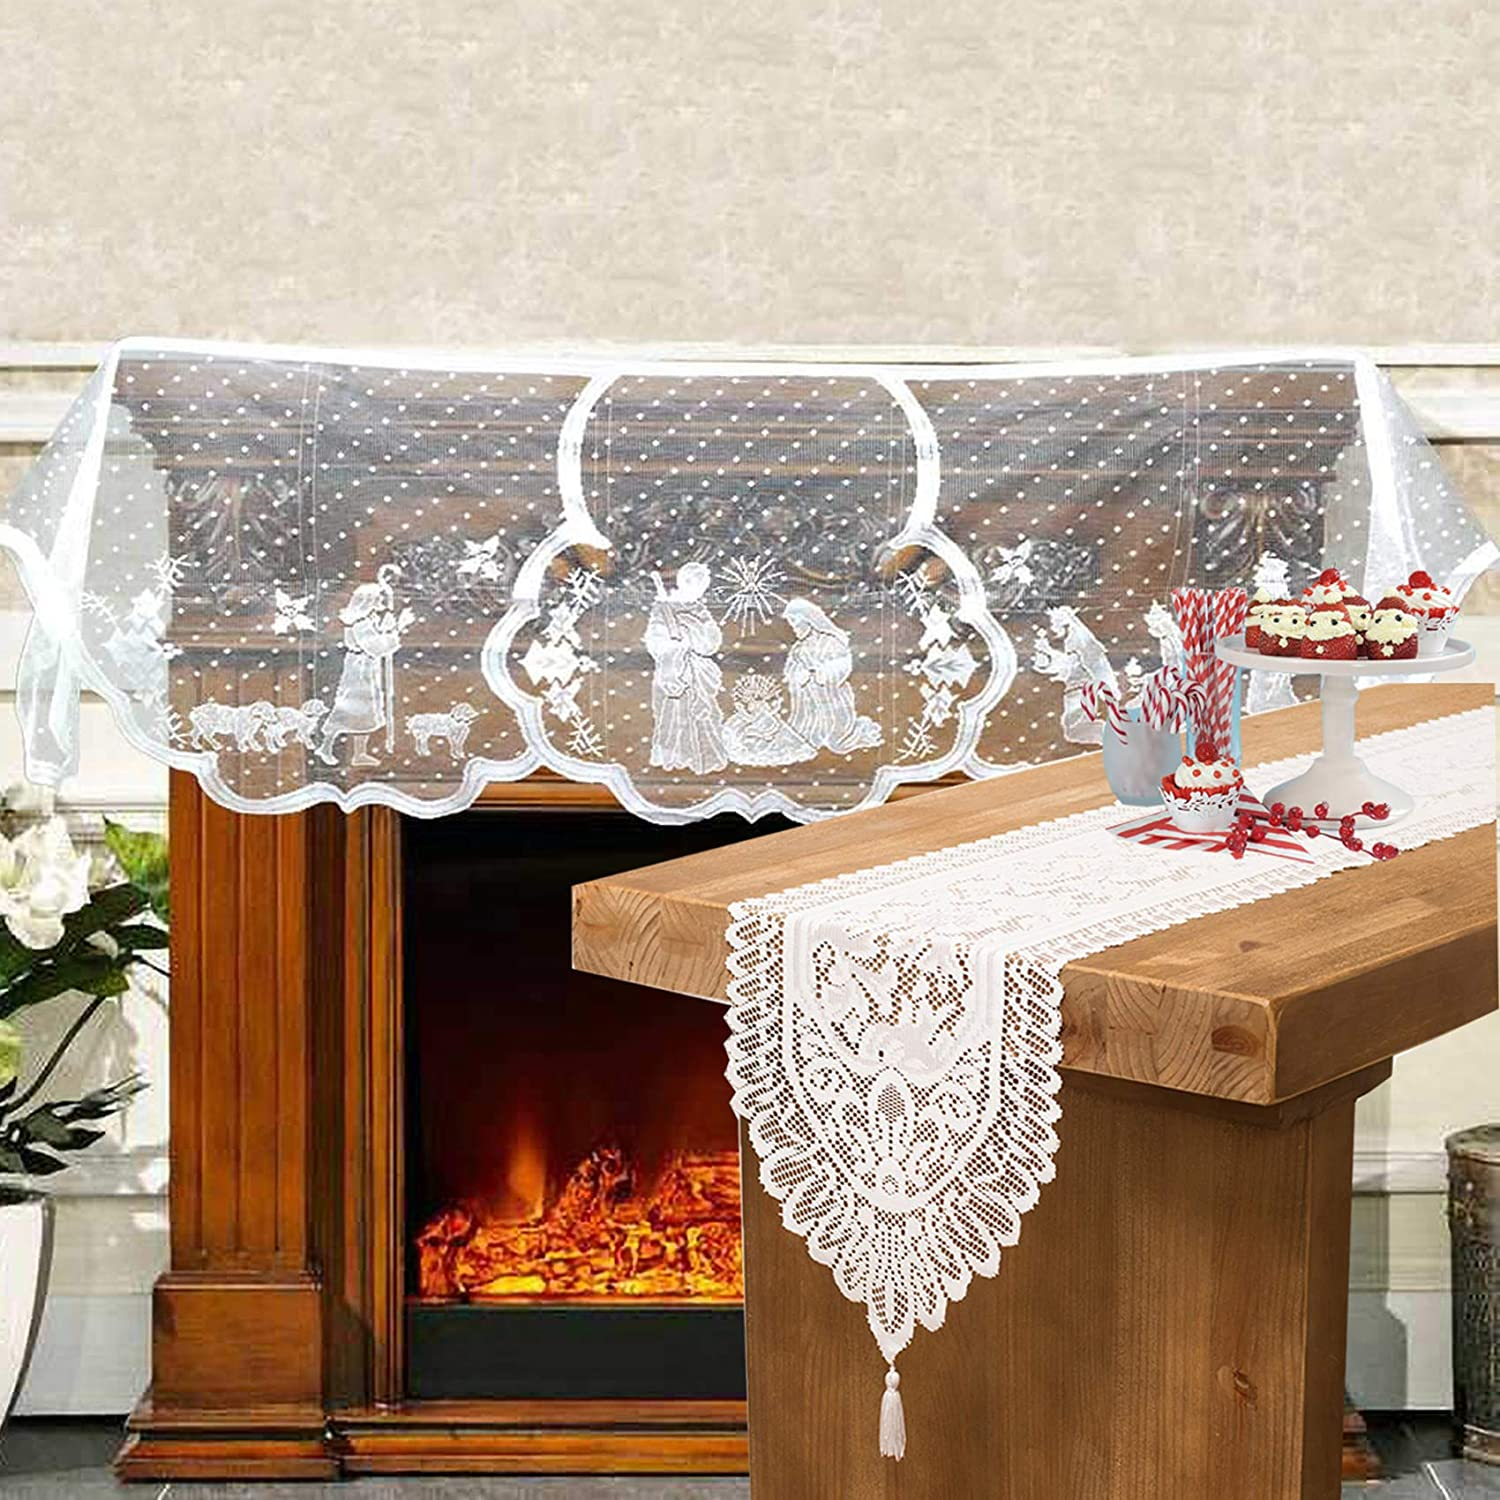 Acronde 20 x 90 inch Christmas Decor Fireplace Scarf and 13 x 71 inch Christmas Lace Table Runner White Lace Jesus Christmas Decorations Furniture Living Room Decoration (White)